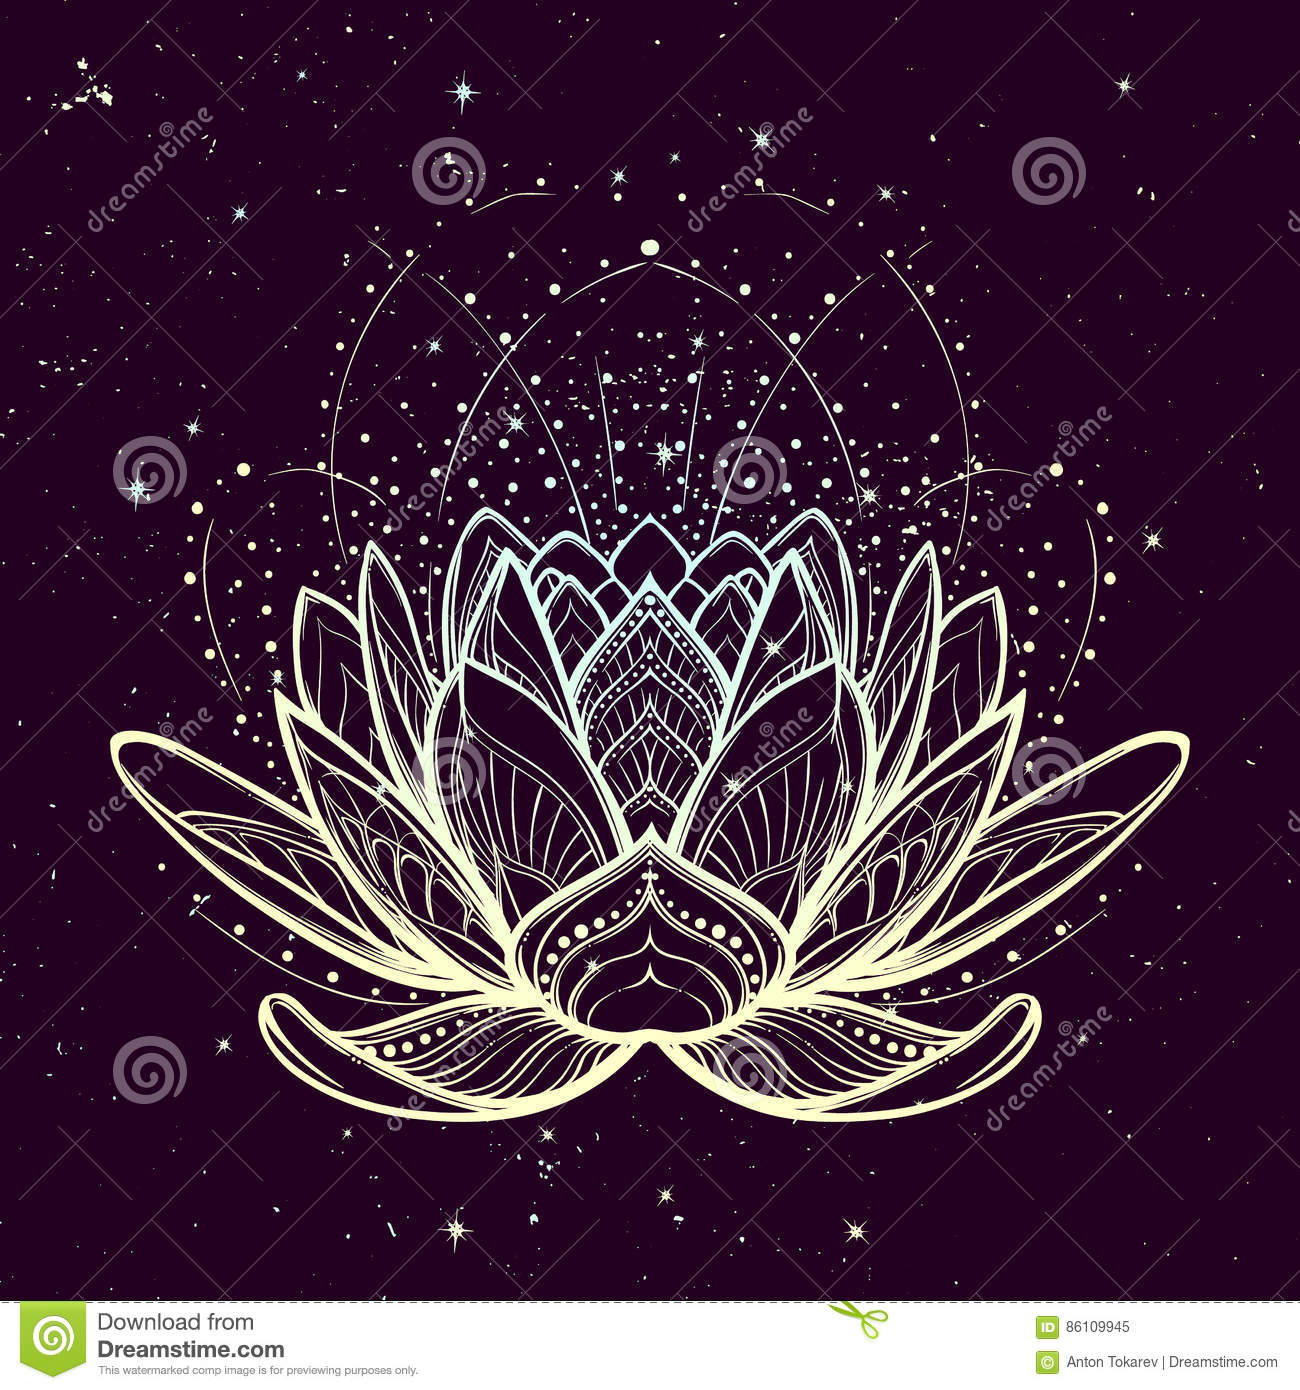 Lotus Flower Intricate Stylized Linear Drawing On Starry Nignt Sky